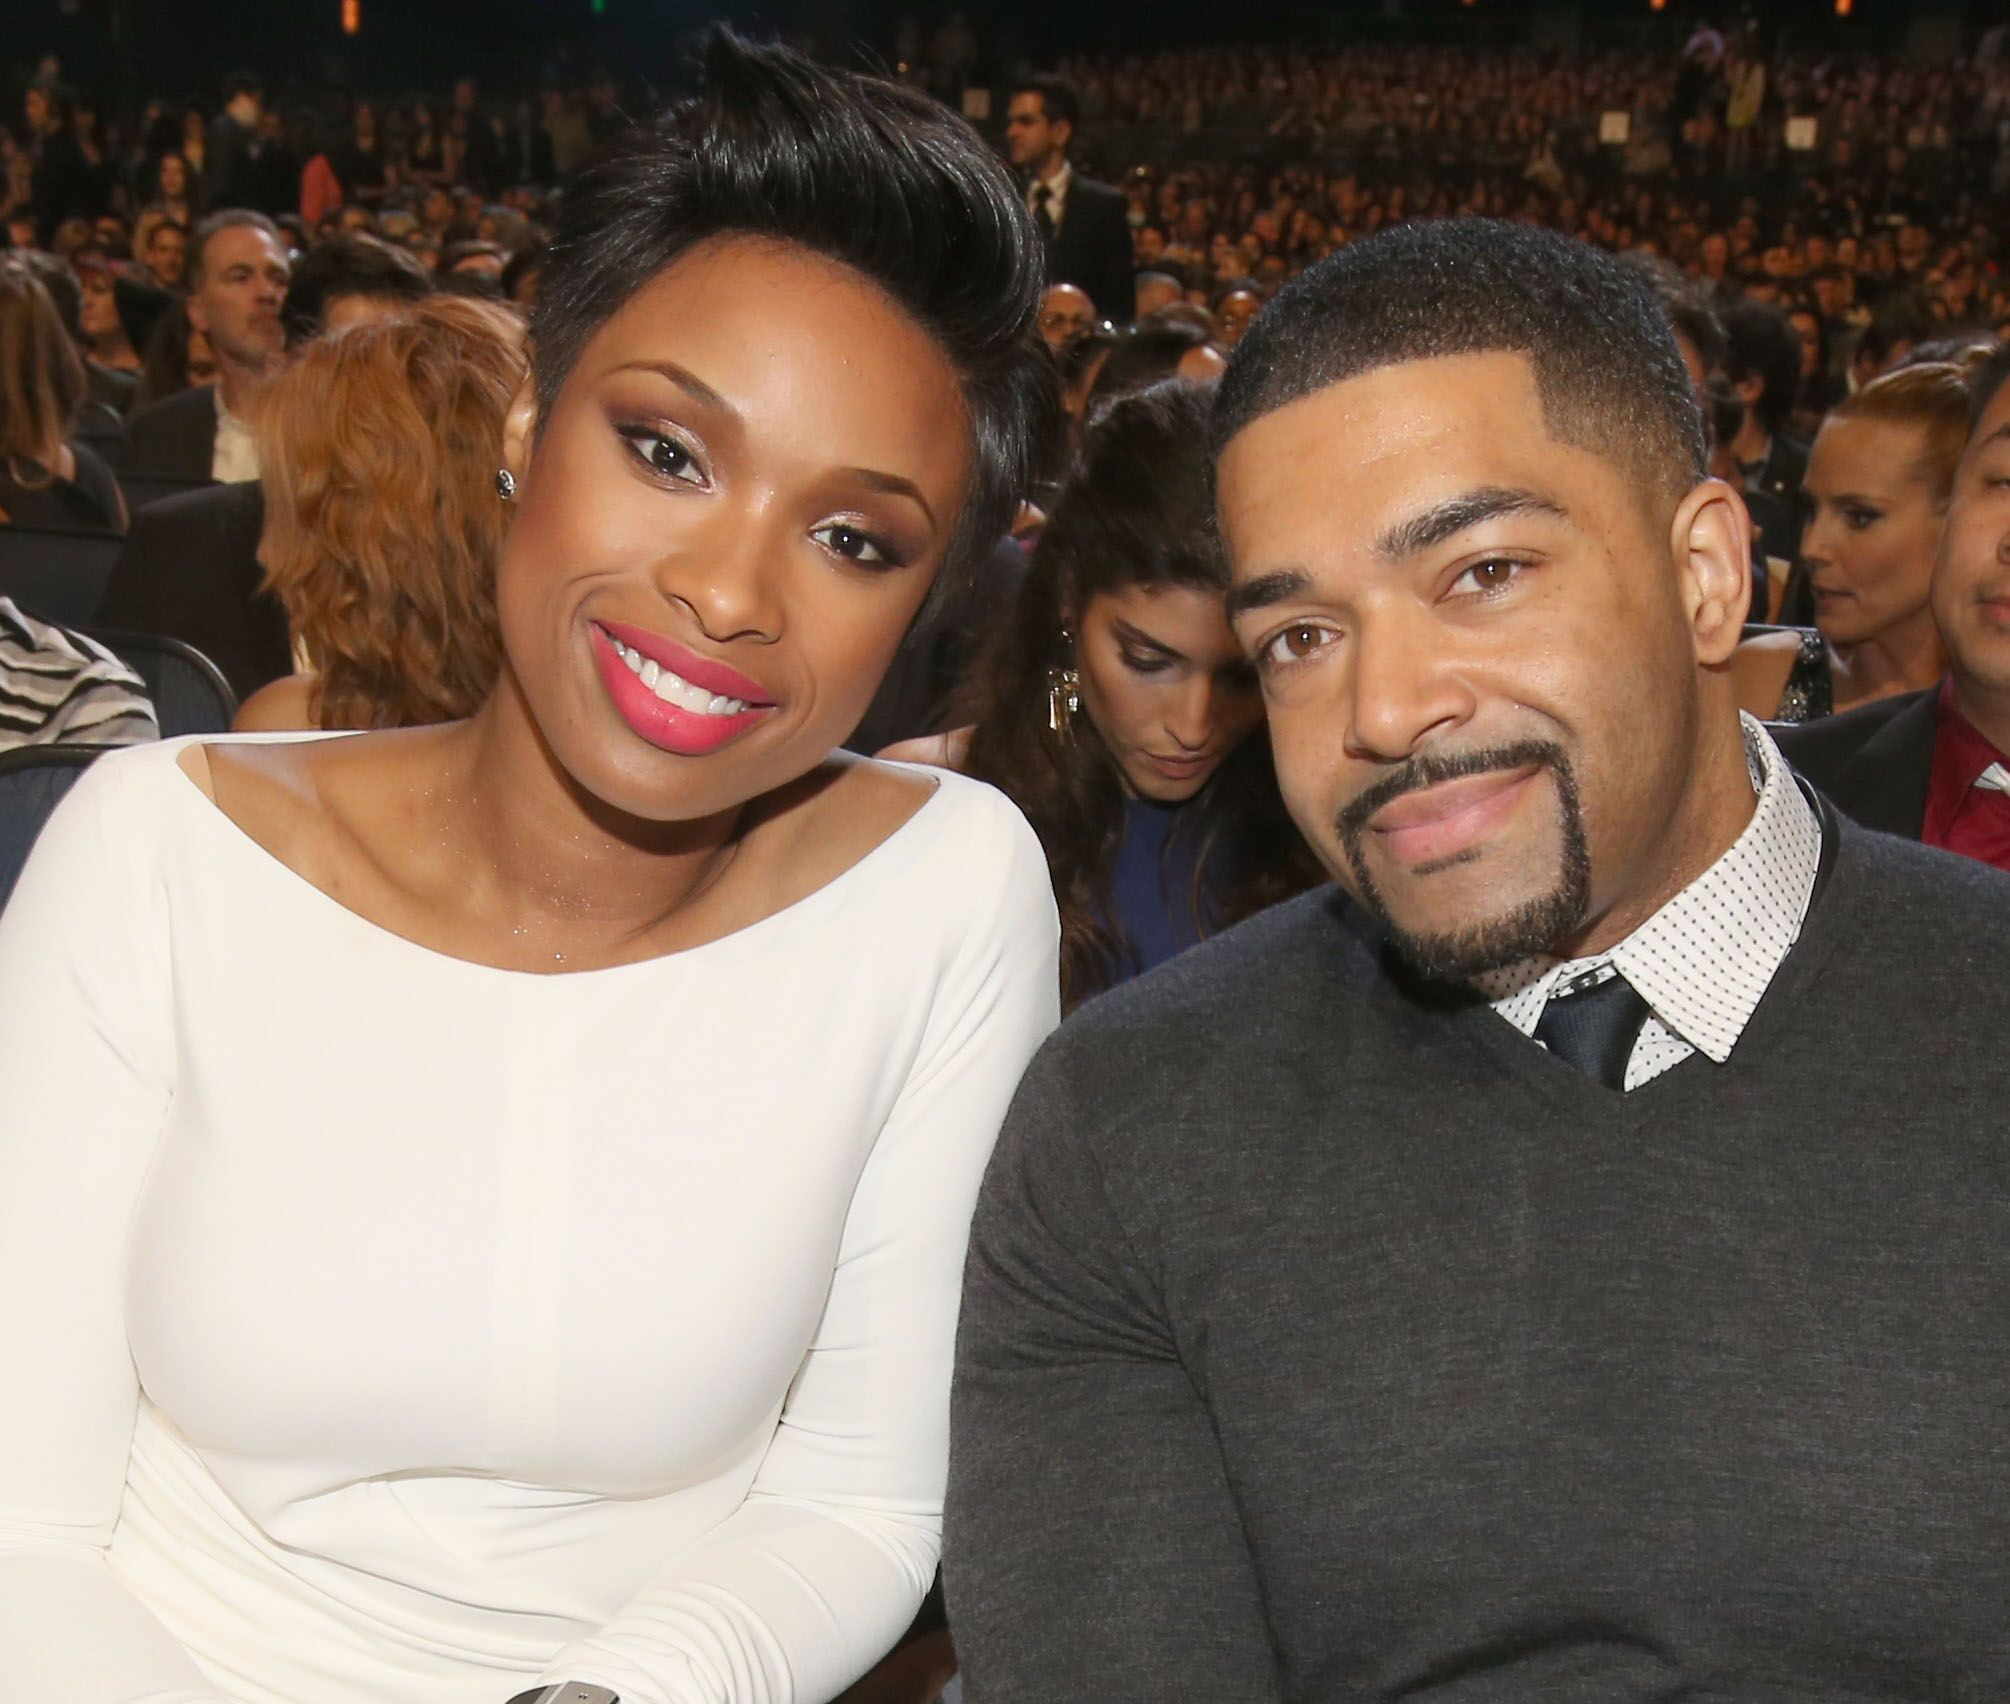 Jennifer Hudson (L) and David Otunga attend The 40th Annual People's Choice Awards at Nokia Theatre L.A. Live | Photo: Getty Images